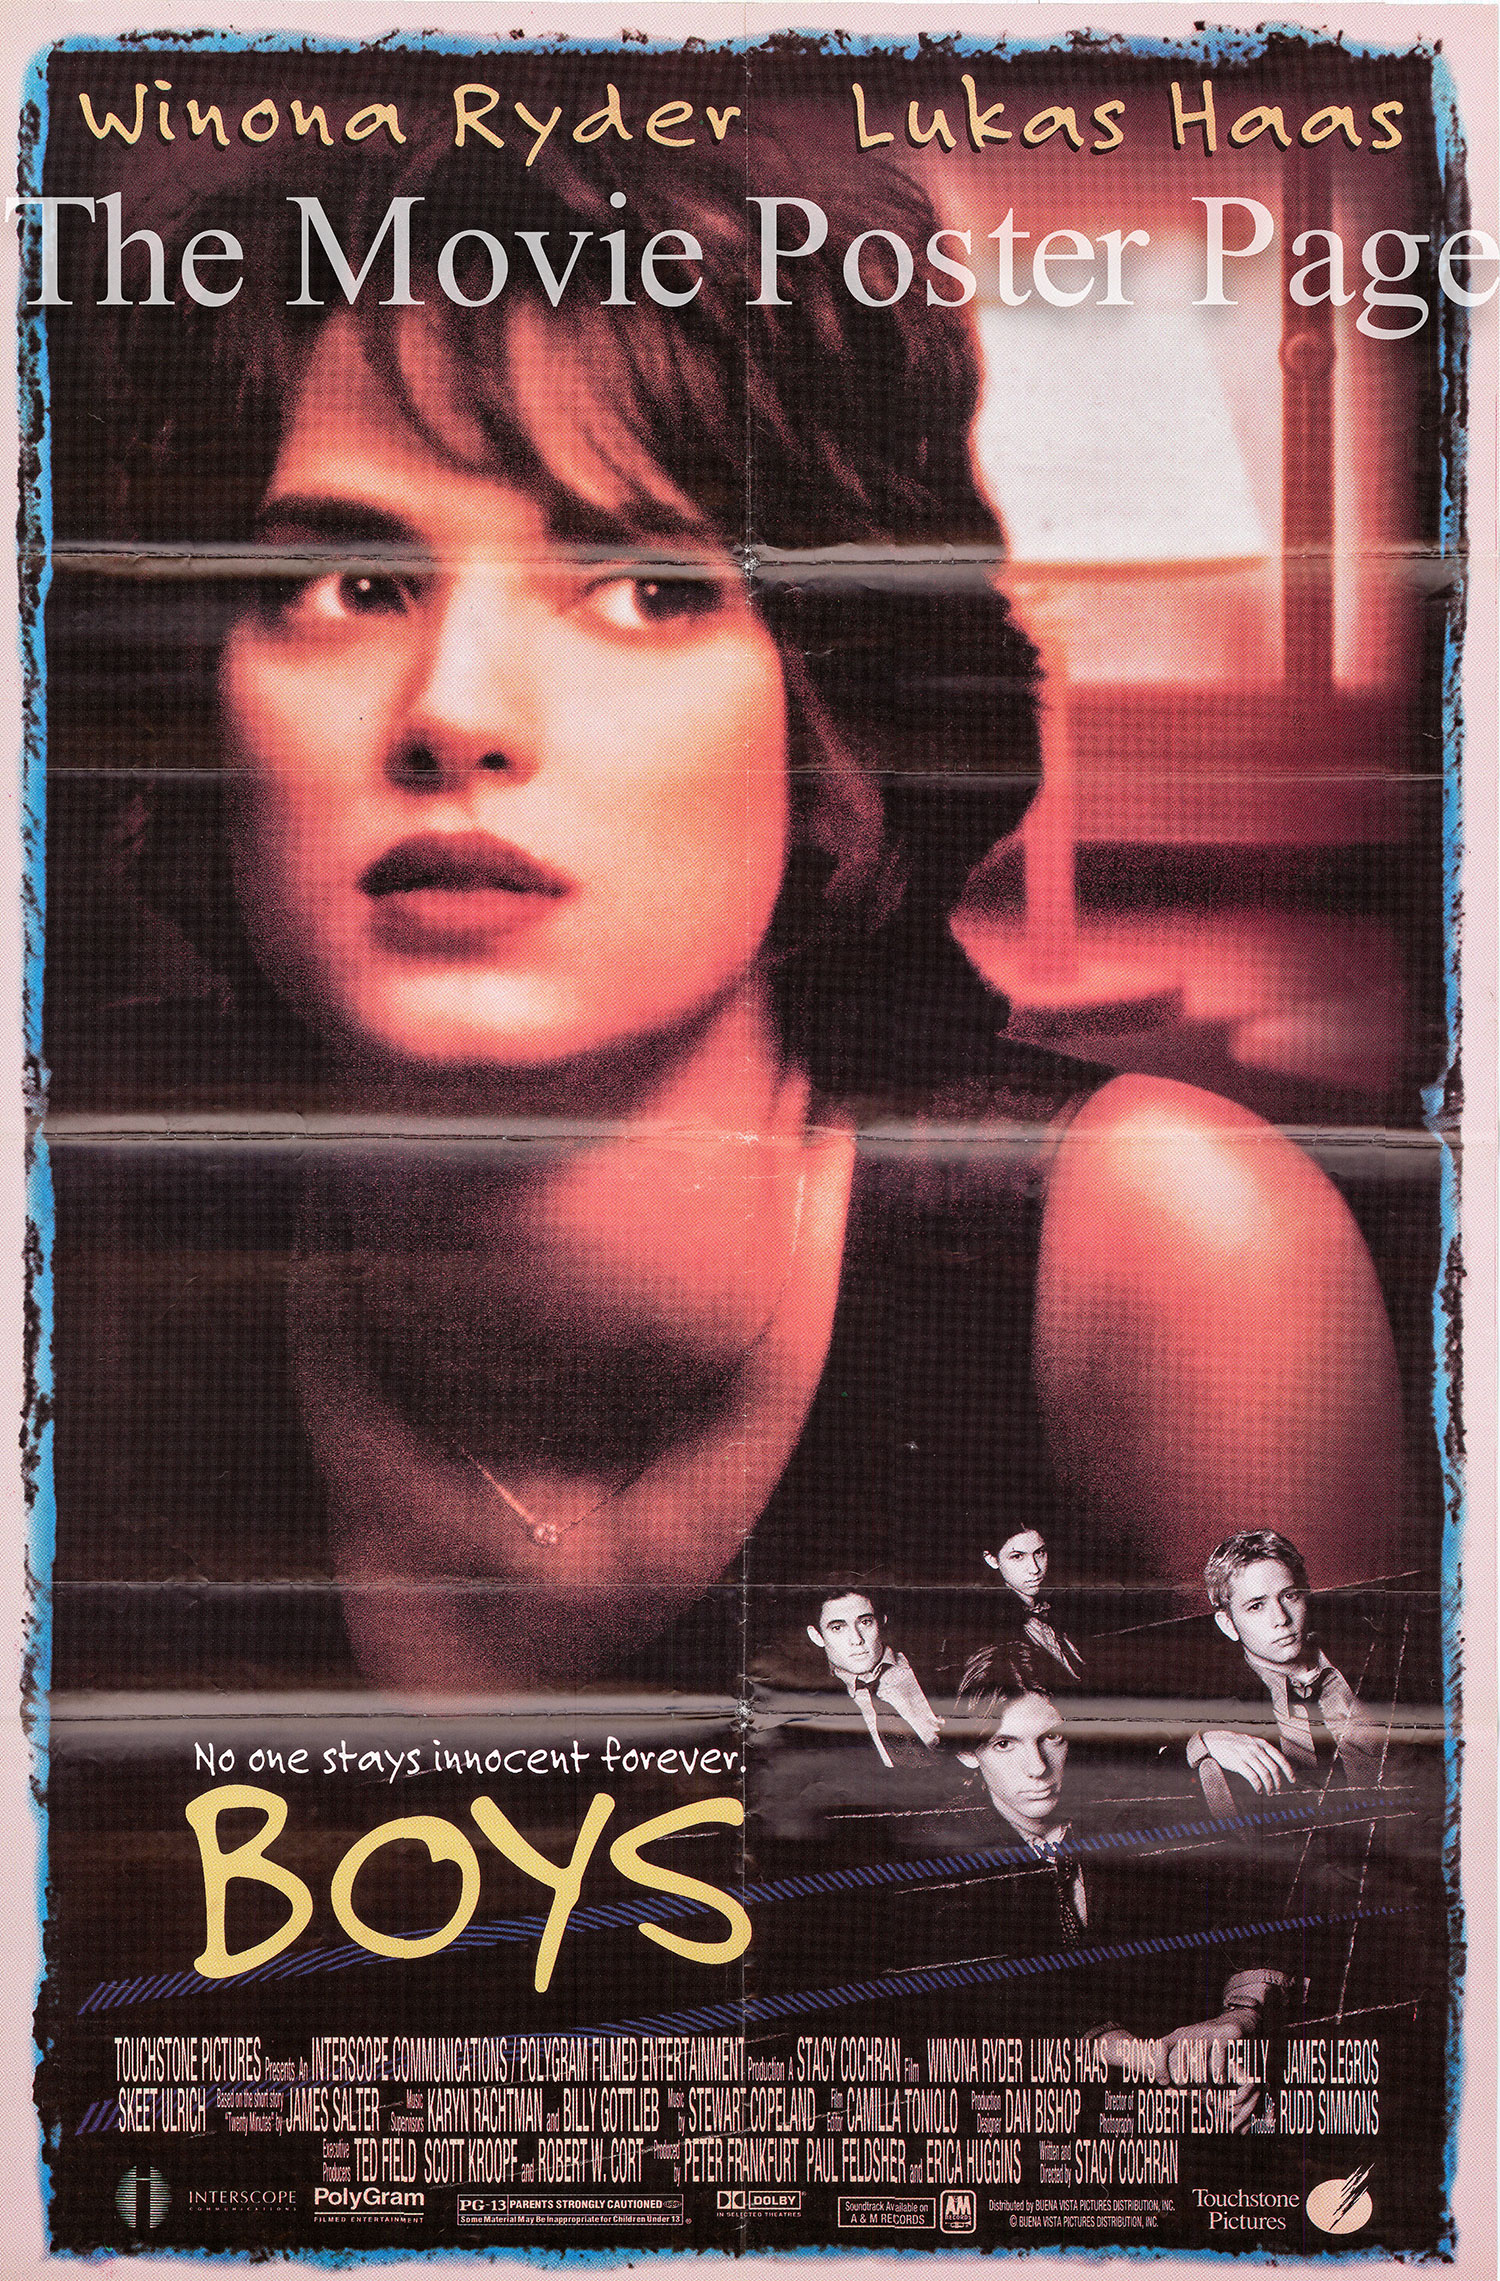 Pictured is an international one-sheet poster for the 1996 Stacy Cochran film Boys starring Winona Ryder.